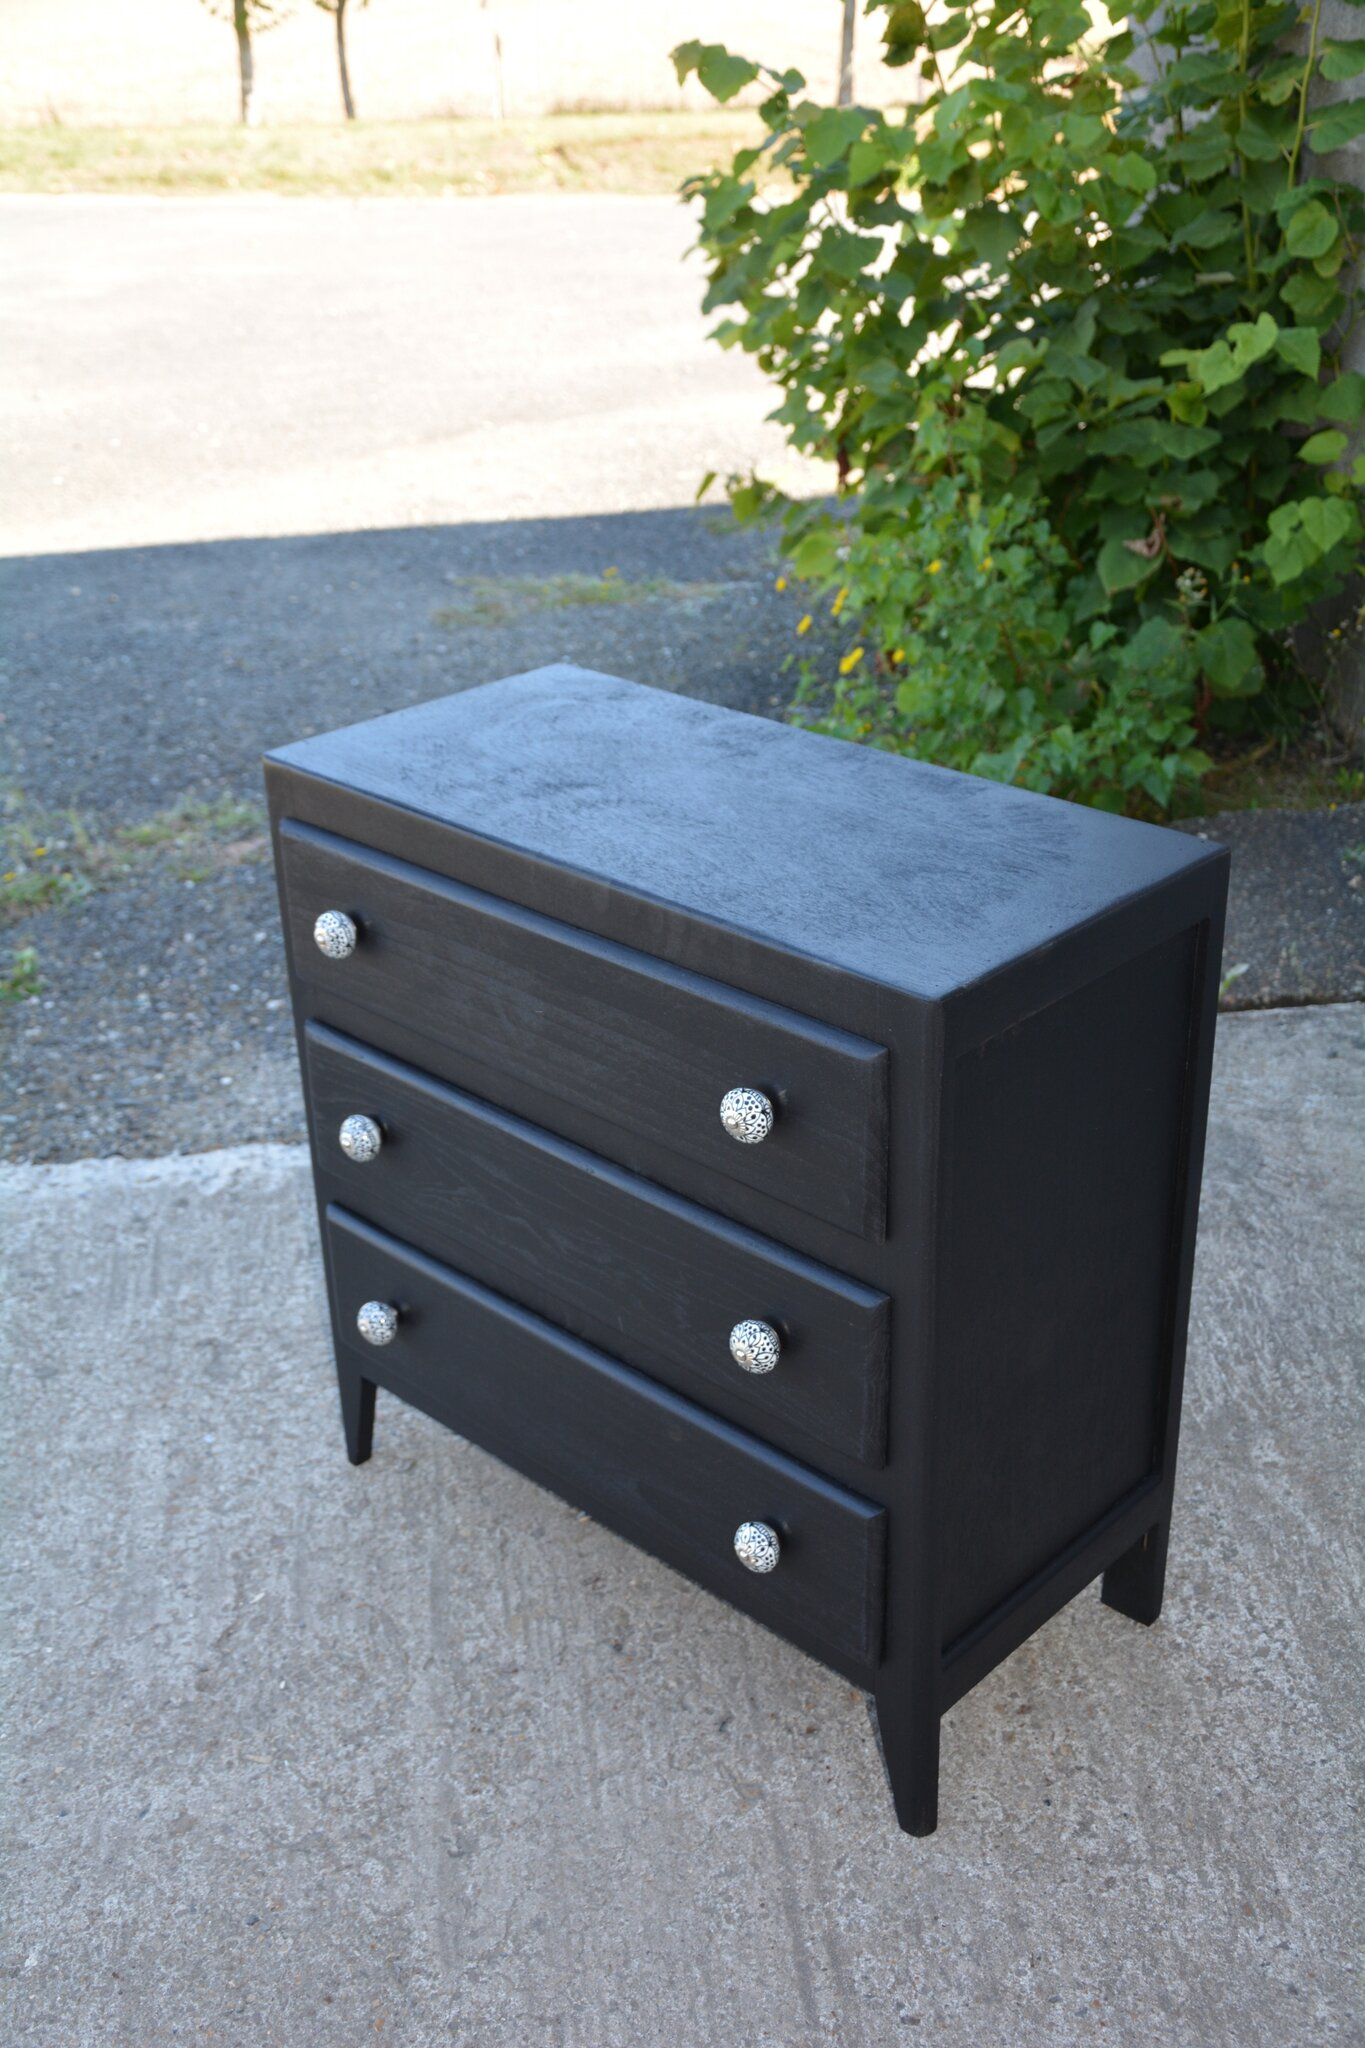 commode ancienne noire la petite brocanteuse. Black Bedroom Furniture Sets. Home Design Ideas